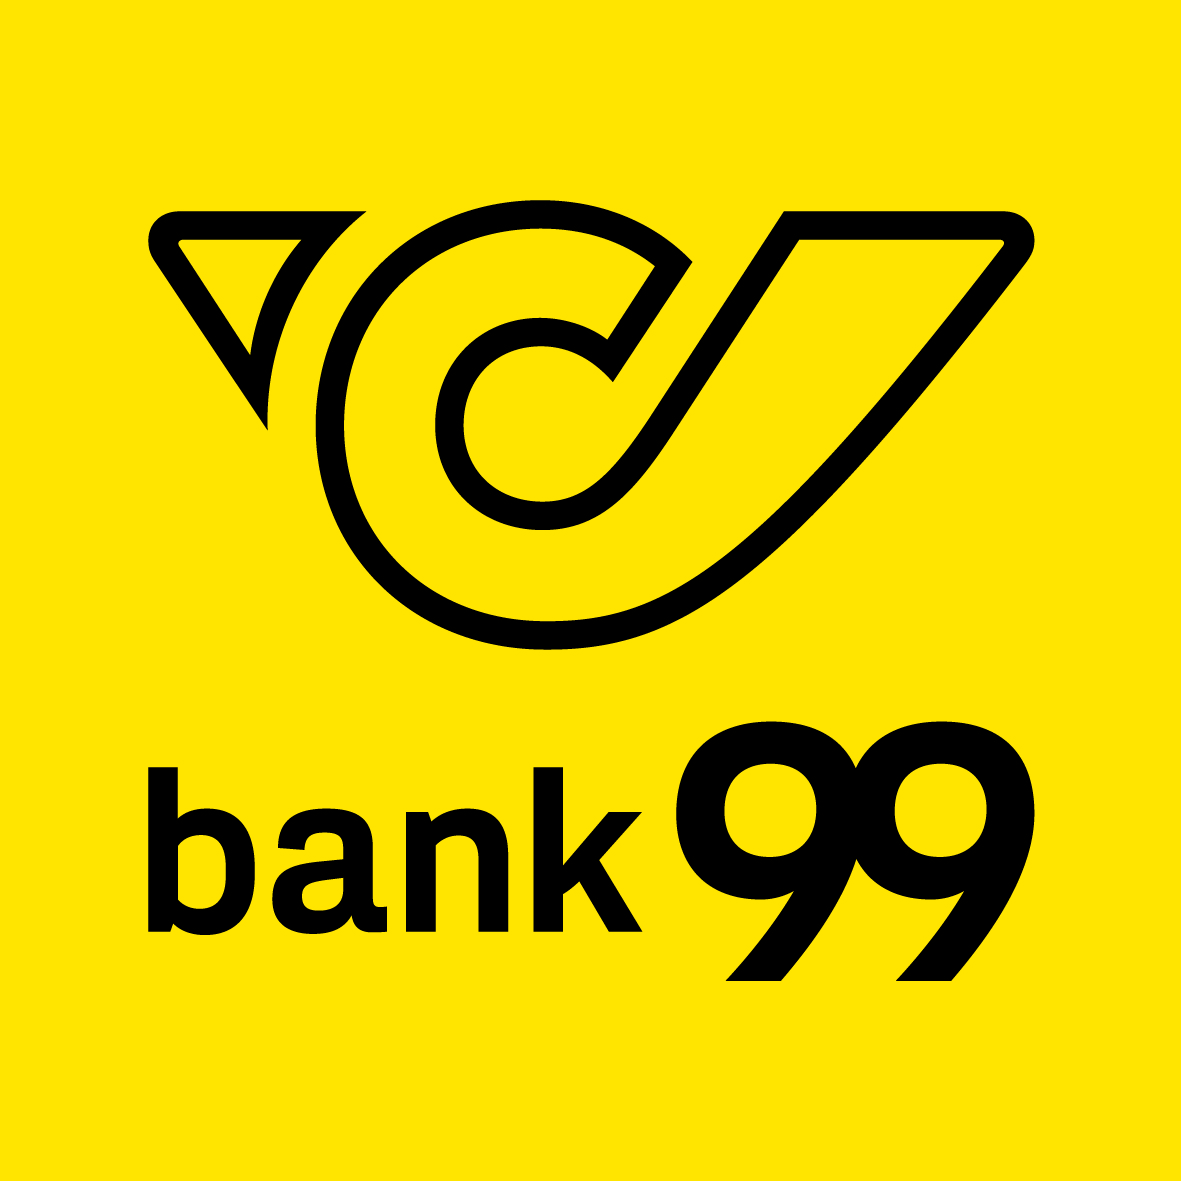 Logo Post bank99 PP CMYK RZ